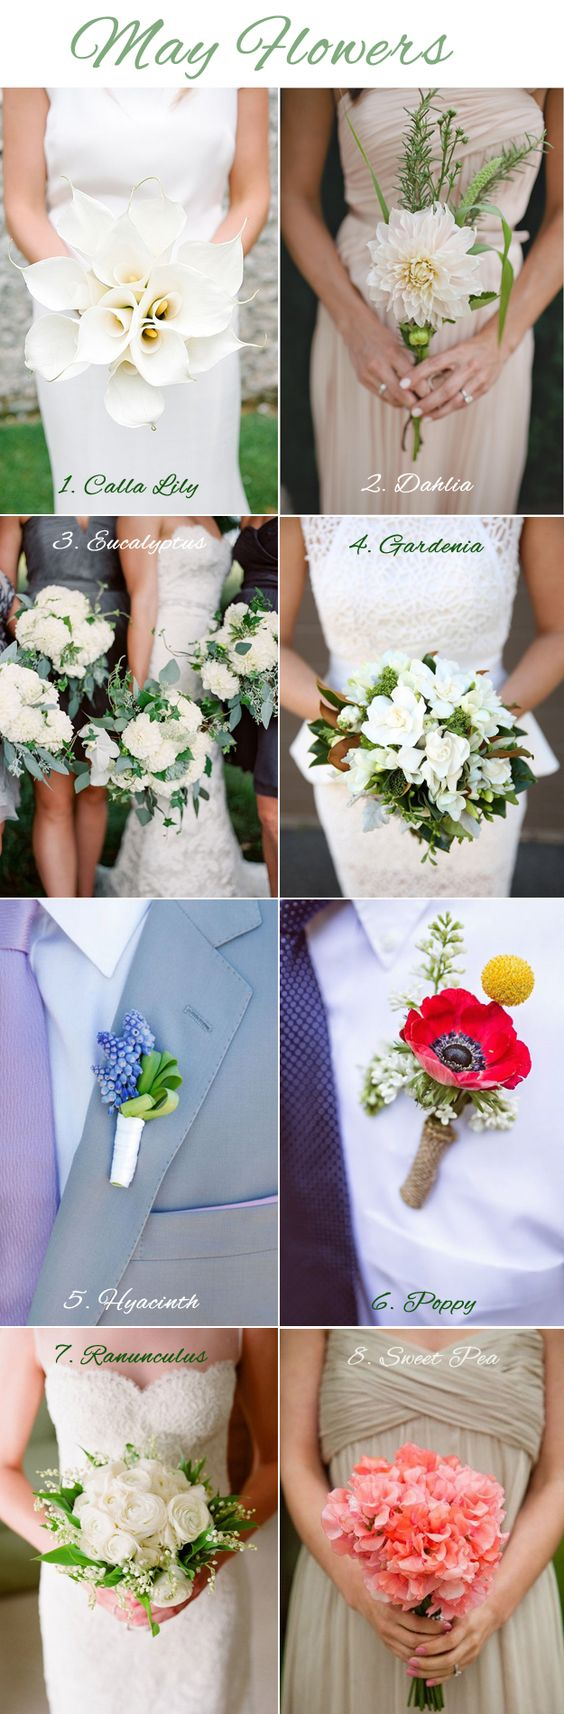 May WeddingFlowers - Lucky in Love Wedding Planning Blog - Seattle Weddings at Banquetevent.com #weddingflowers #Mayflowers #Springflowers